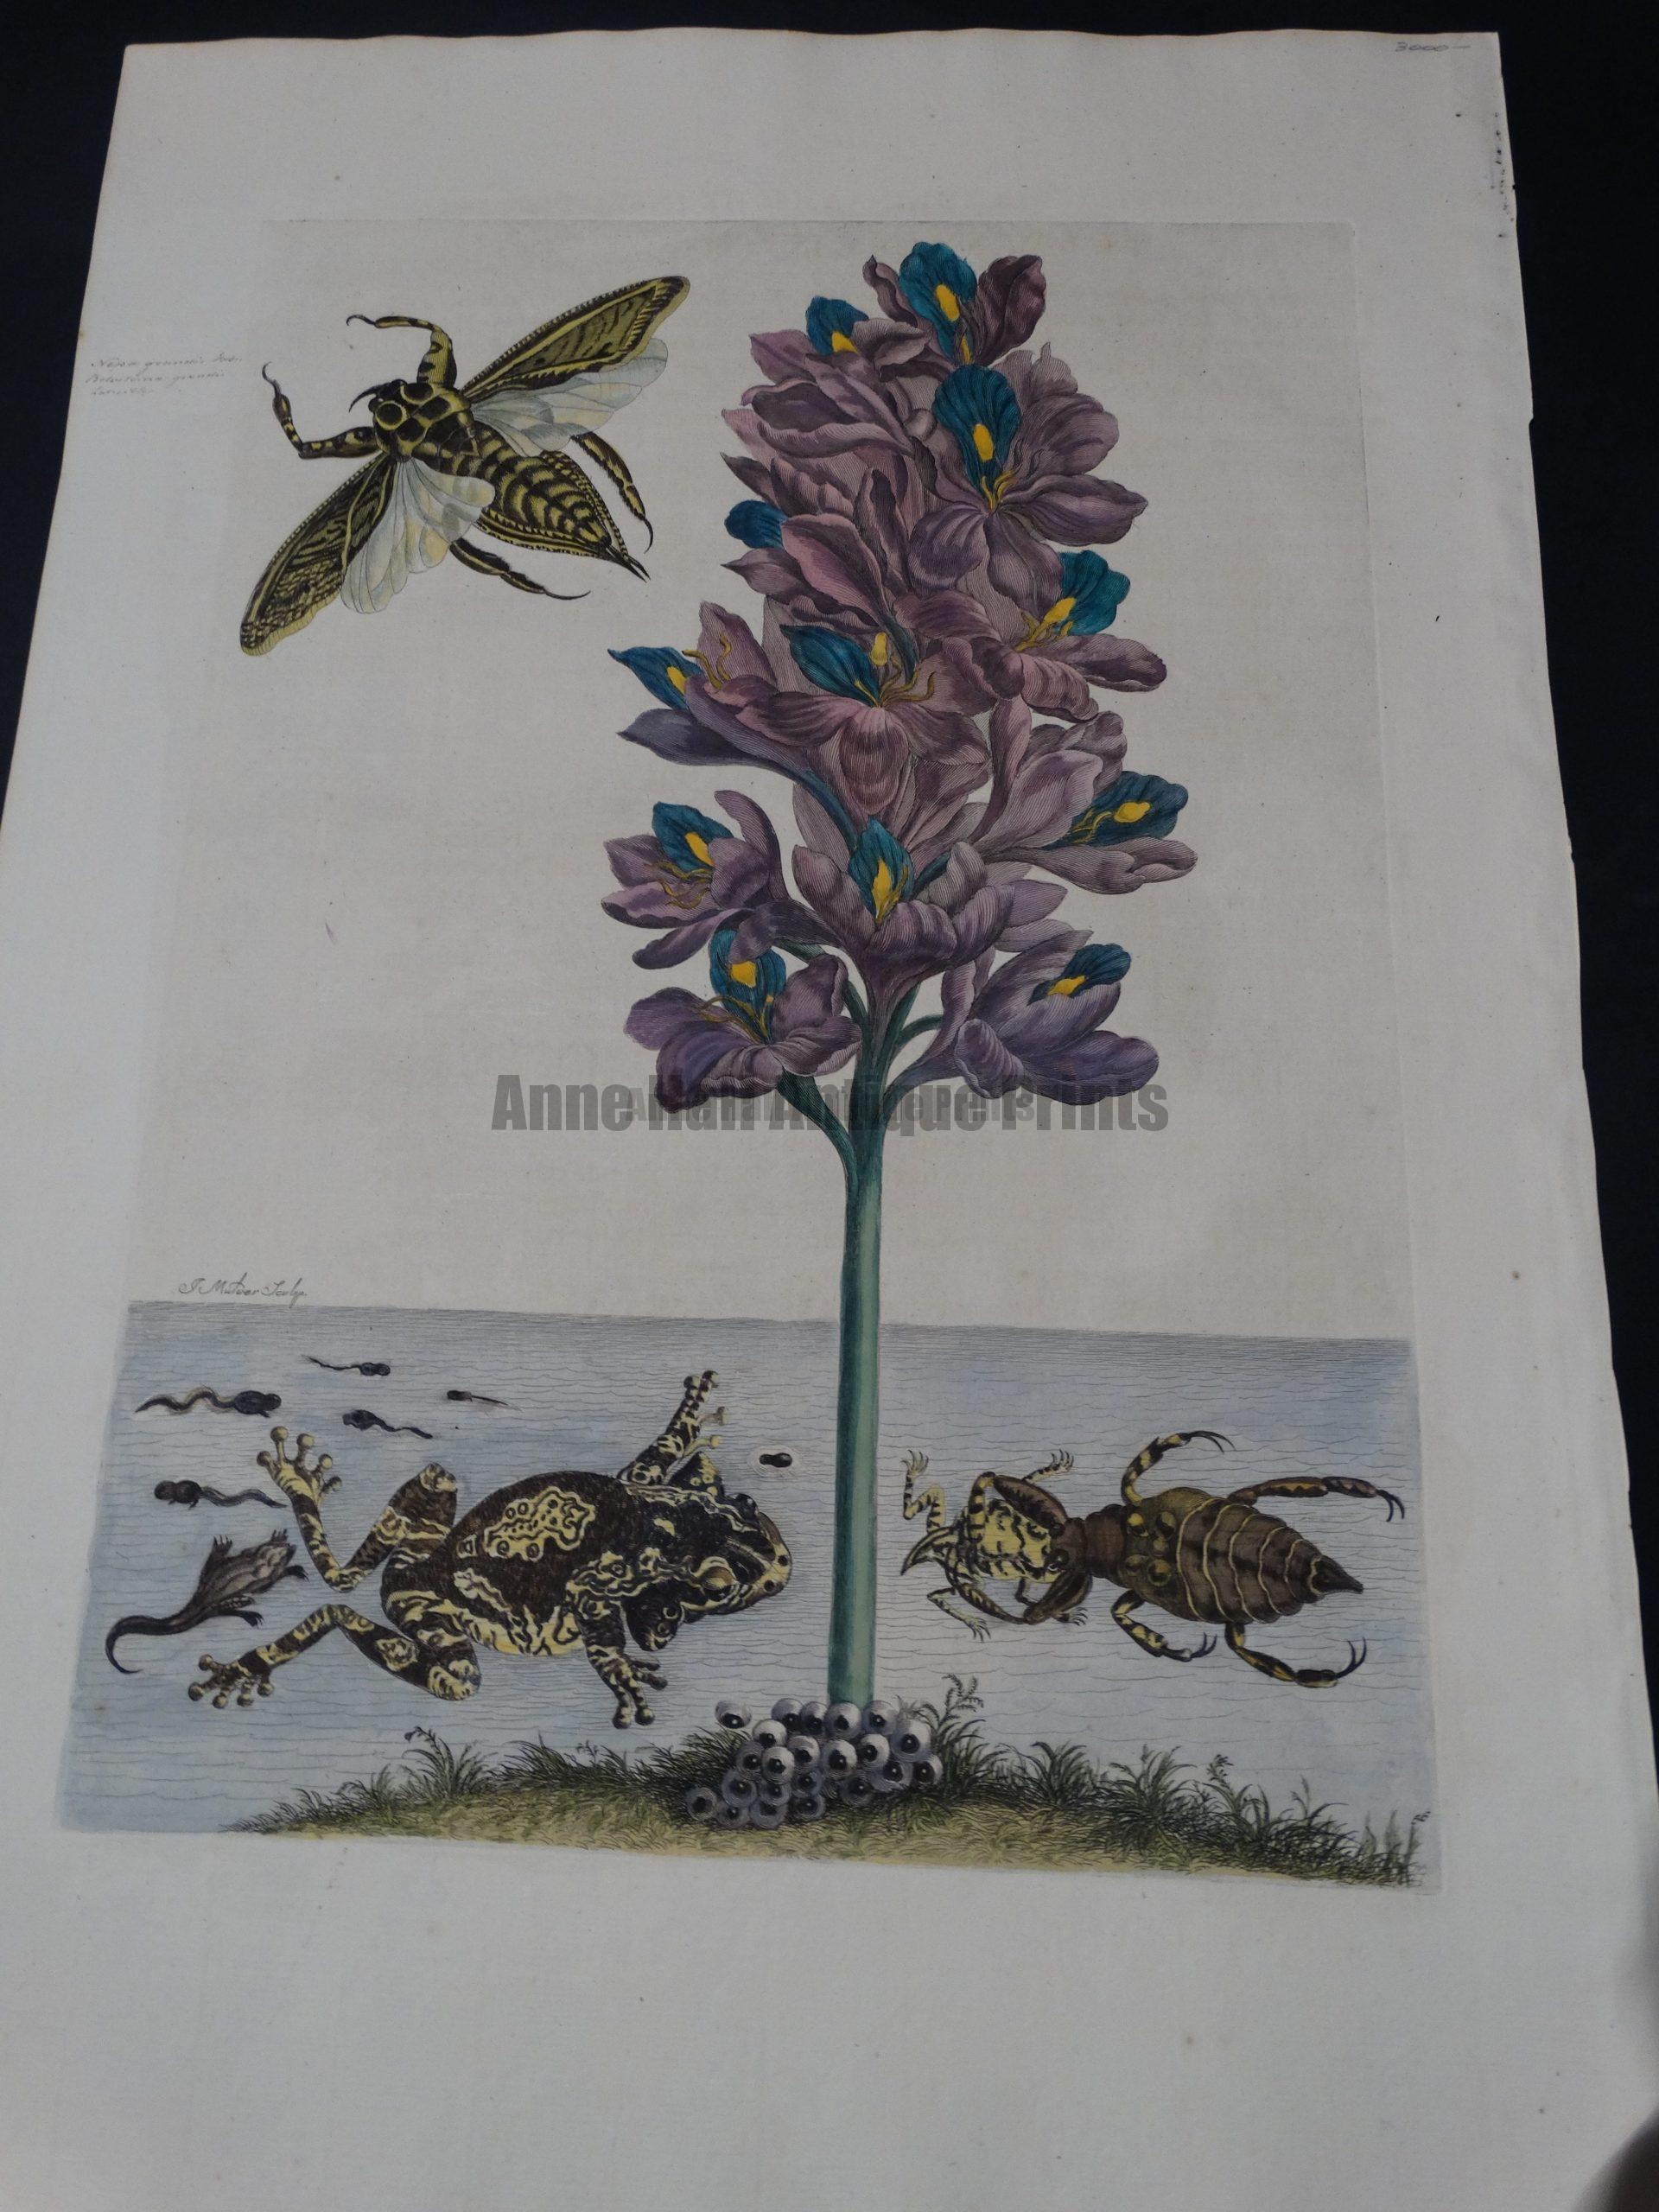 Rare engraving, Maria Sybilla Merian sourced from Metamorphosis Insectorum Surinamensium Water Frogs and Bugs